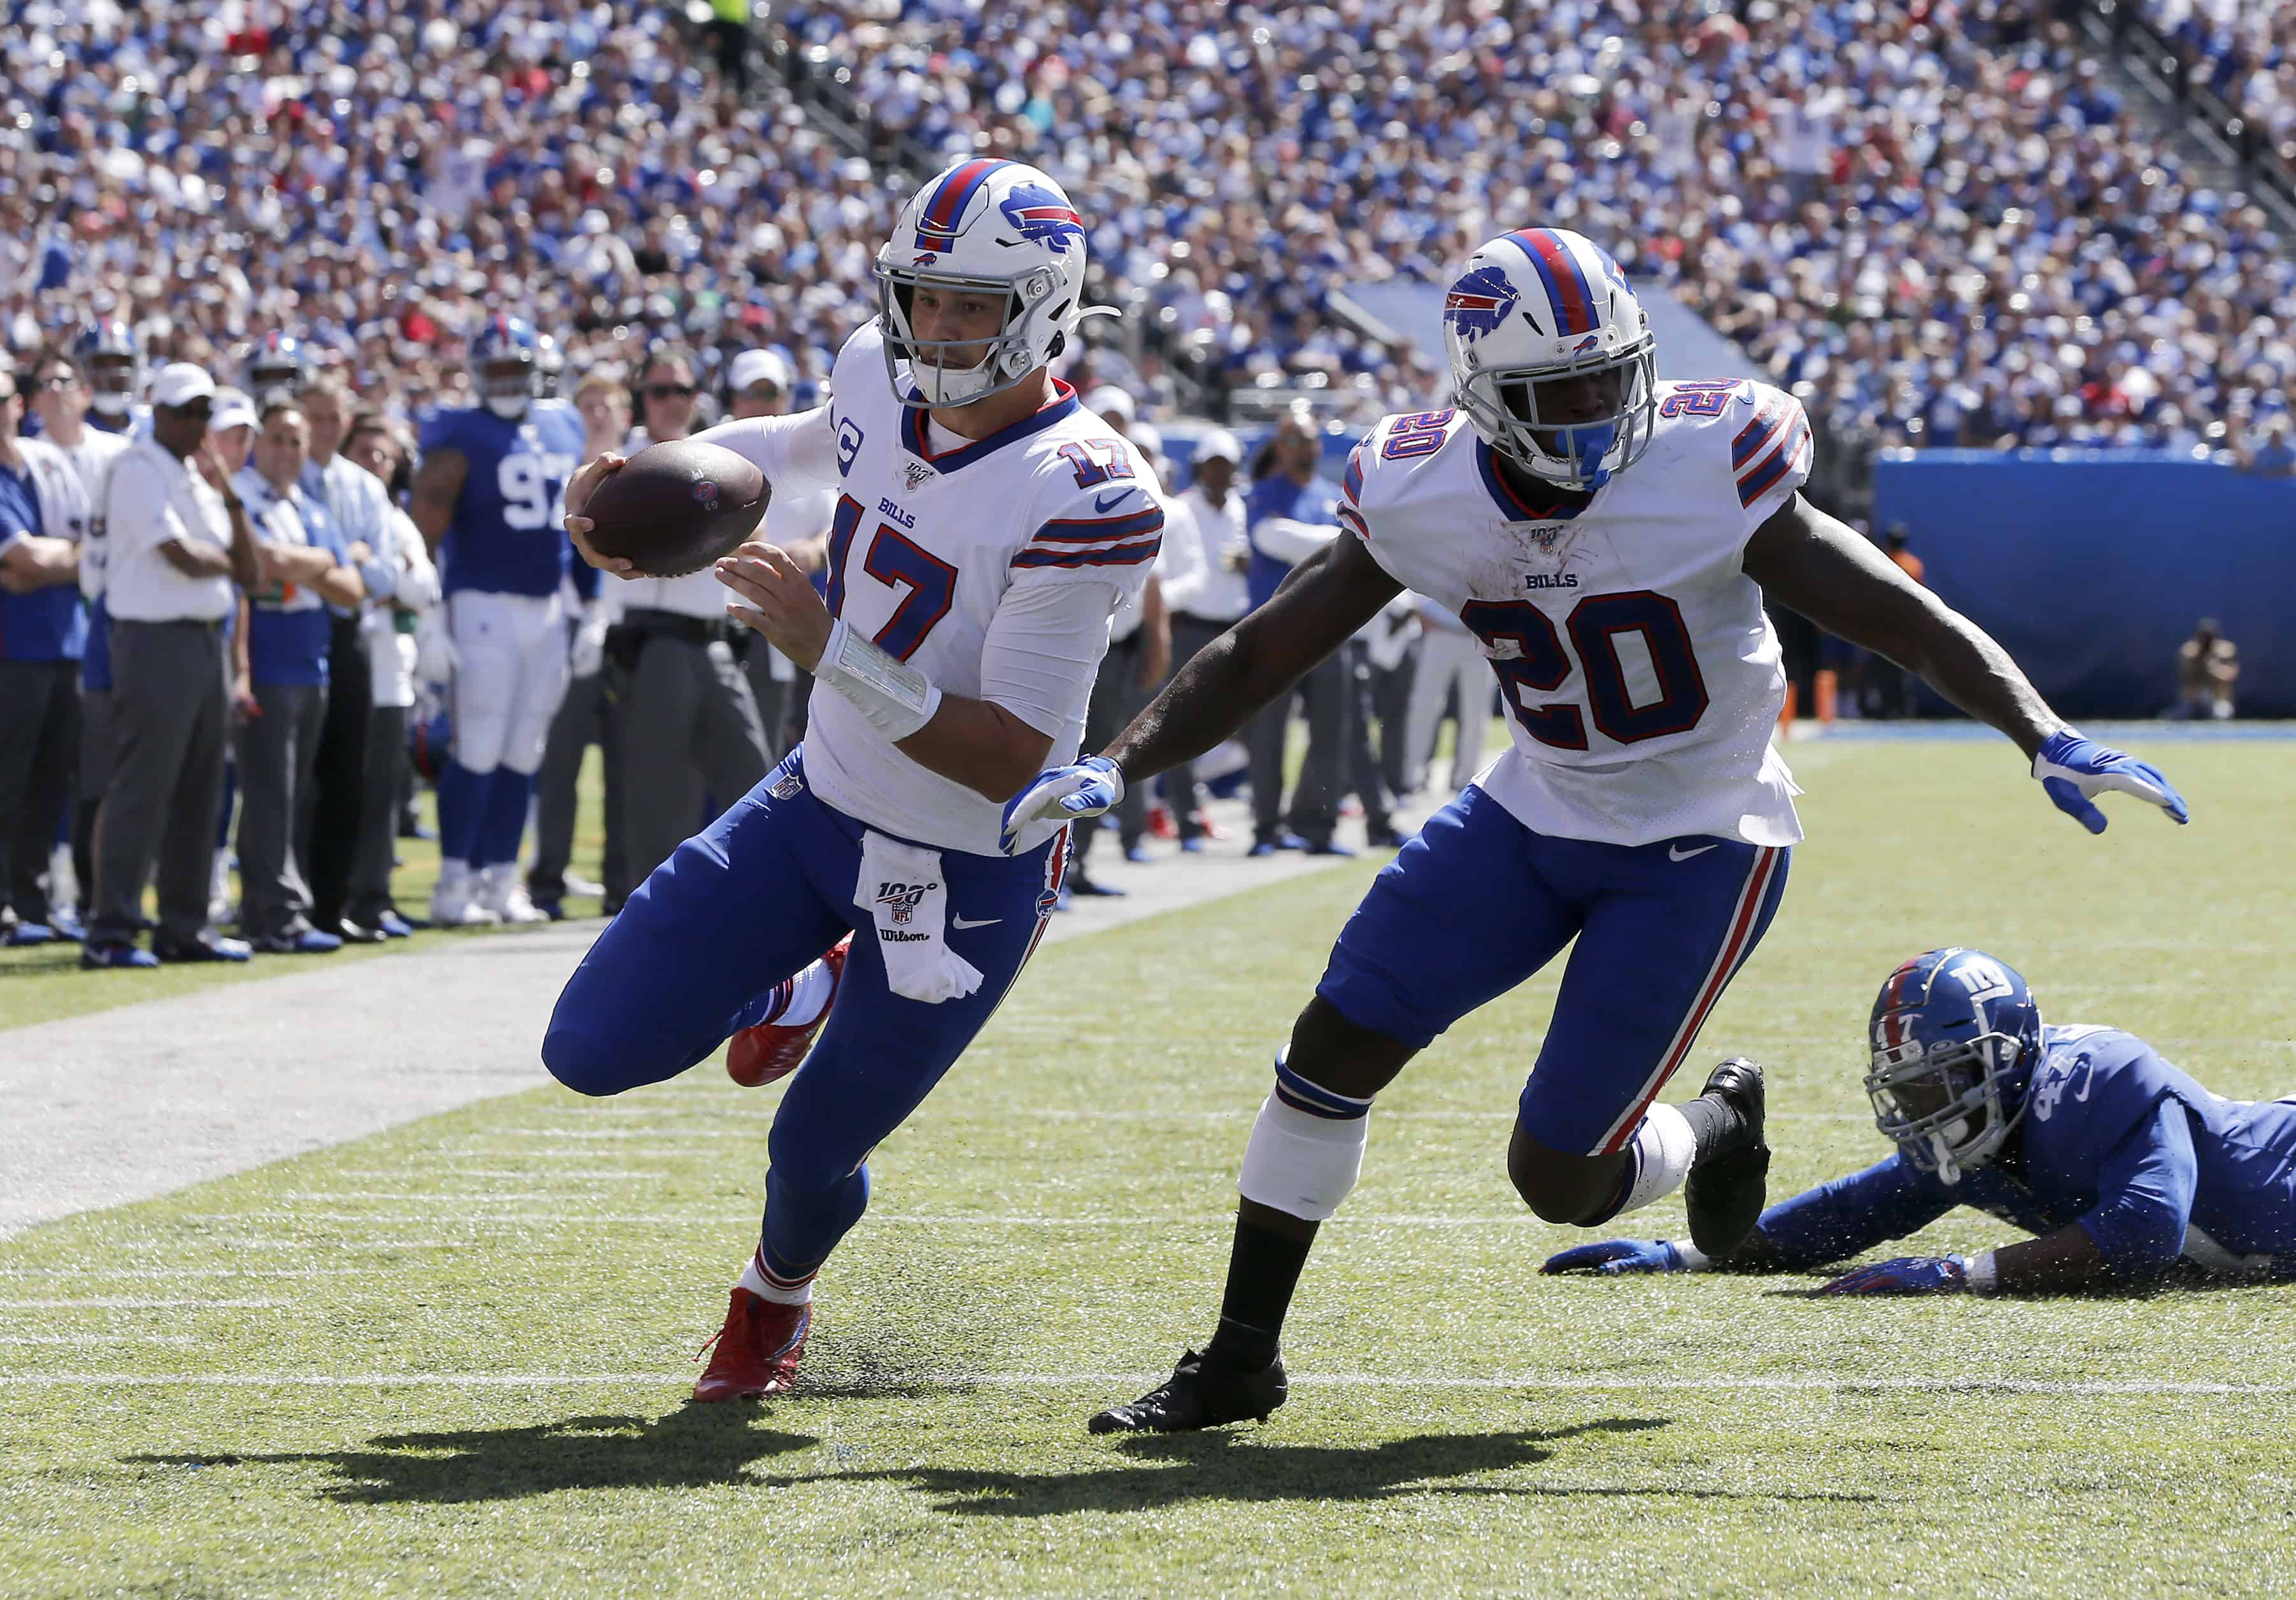 Josh Allen rushes for a touchdown with Frank Gore against the Giants